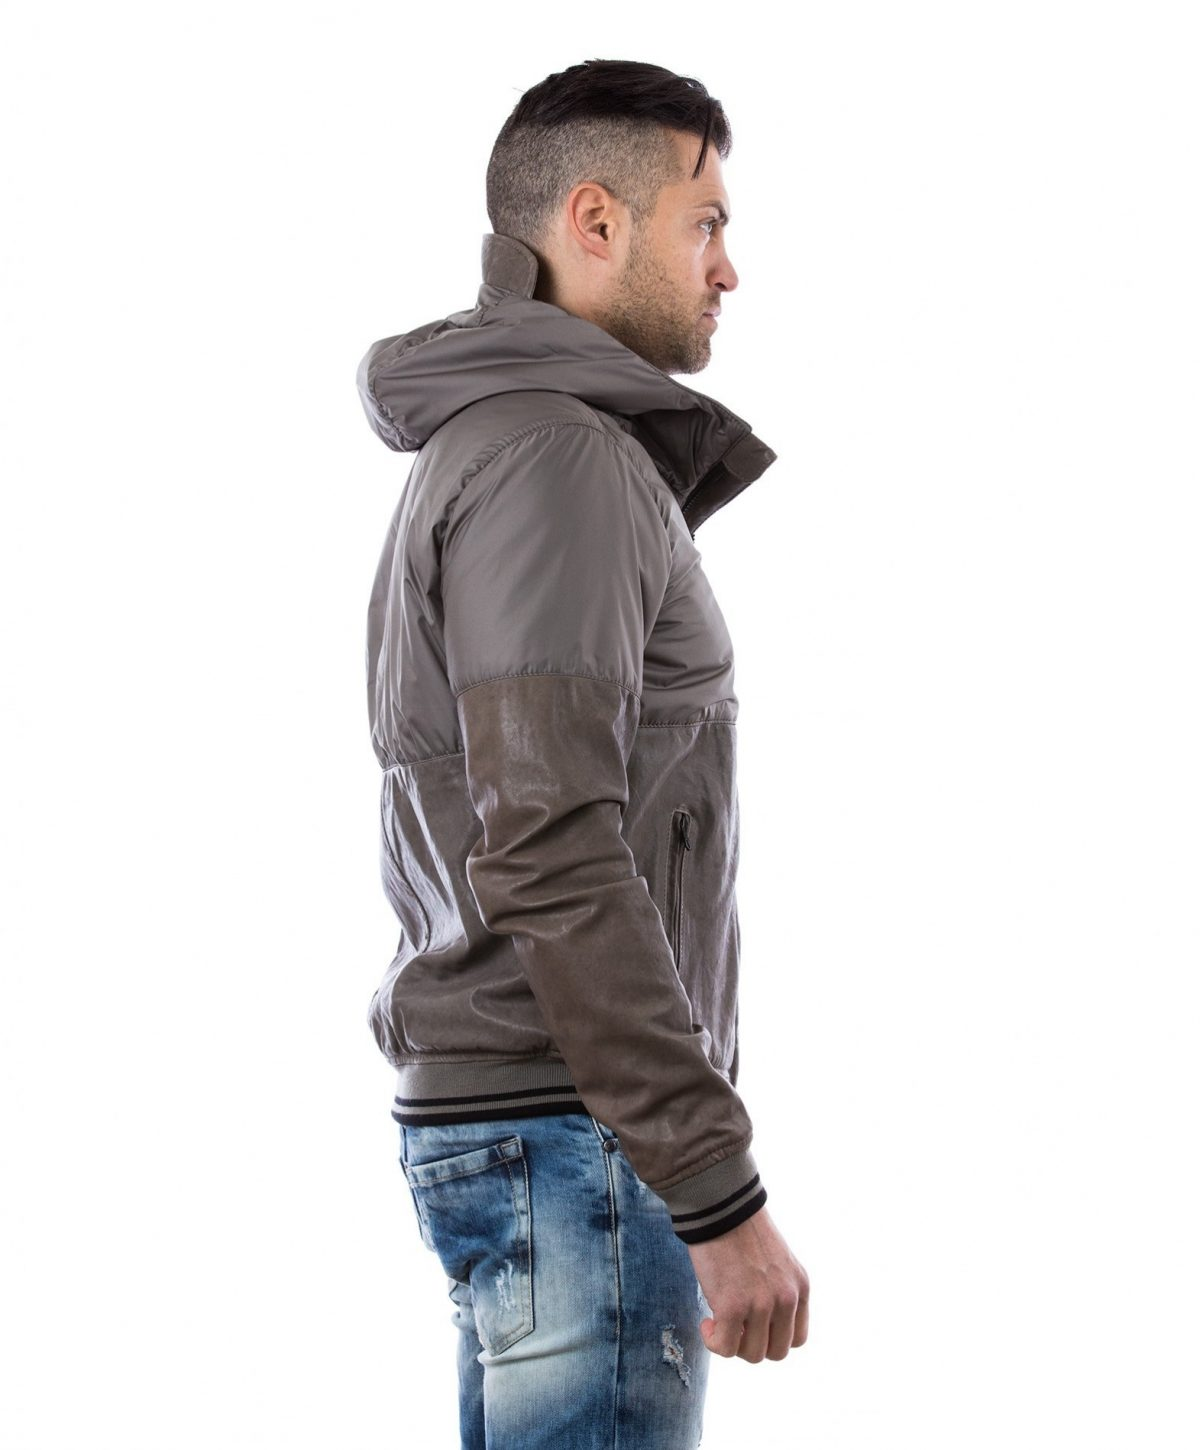 man-leather-down-hooded-jacket-with-hood-grey-pull (3)